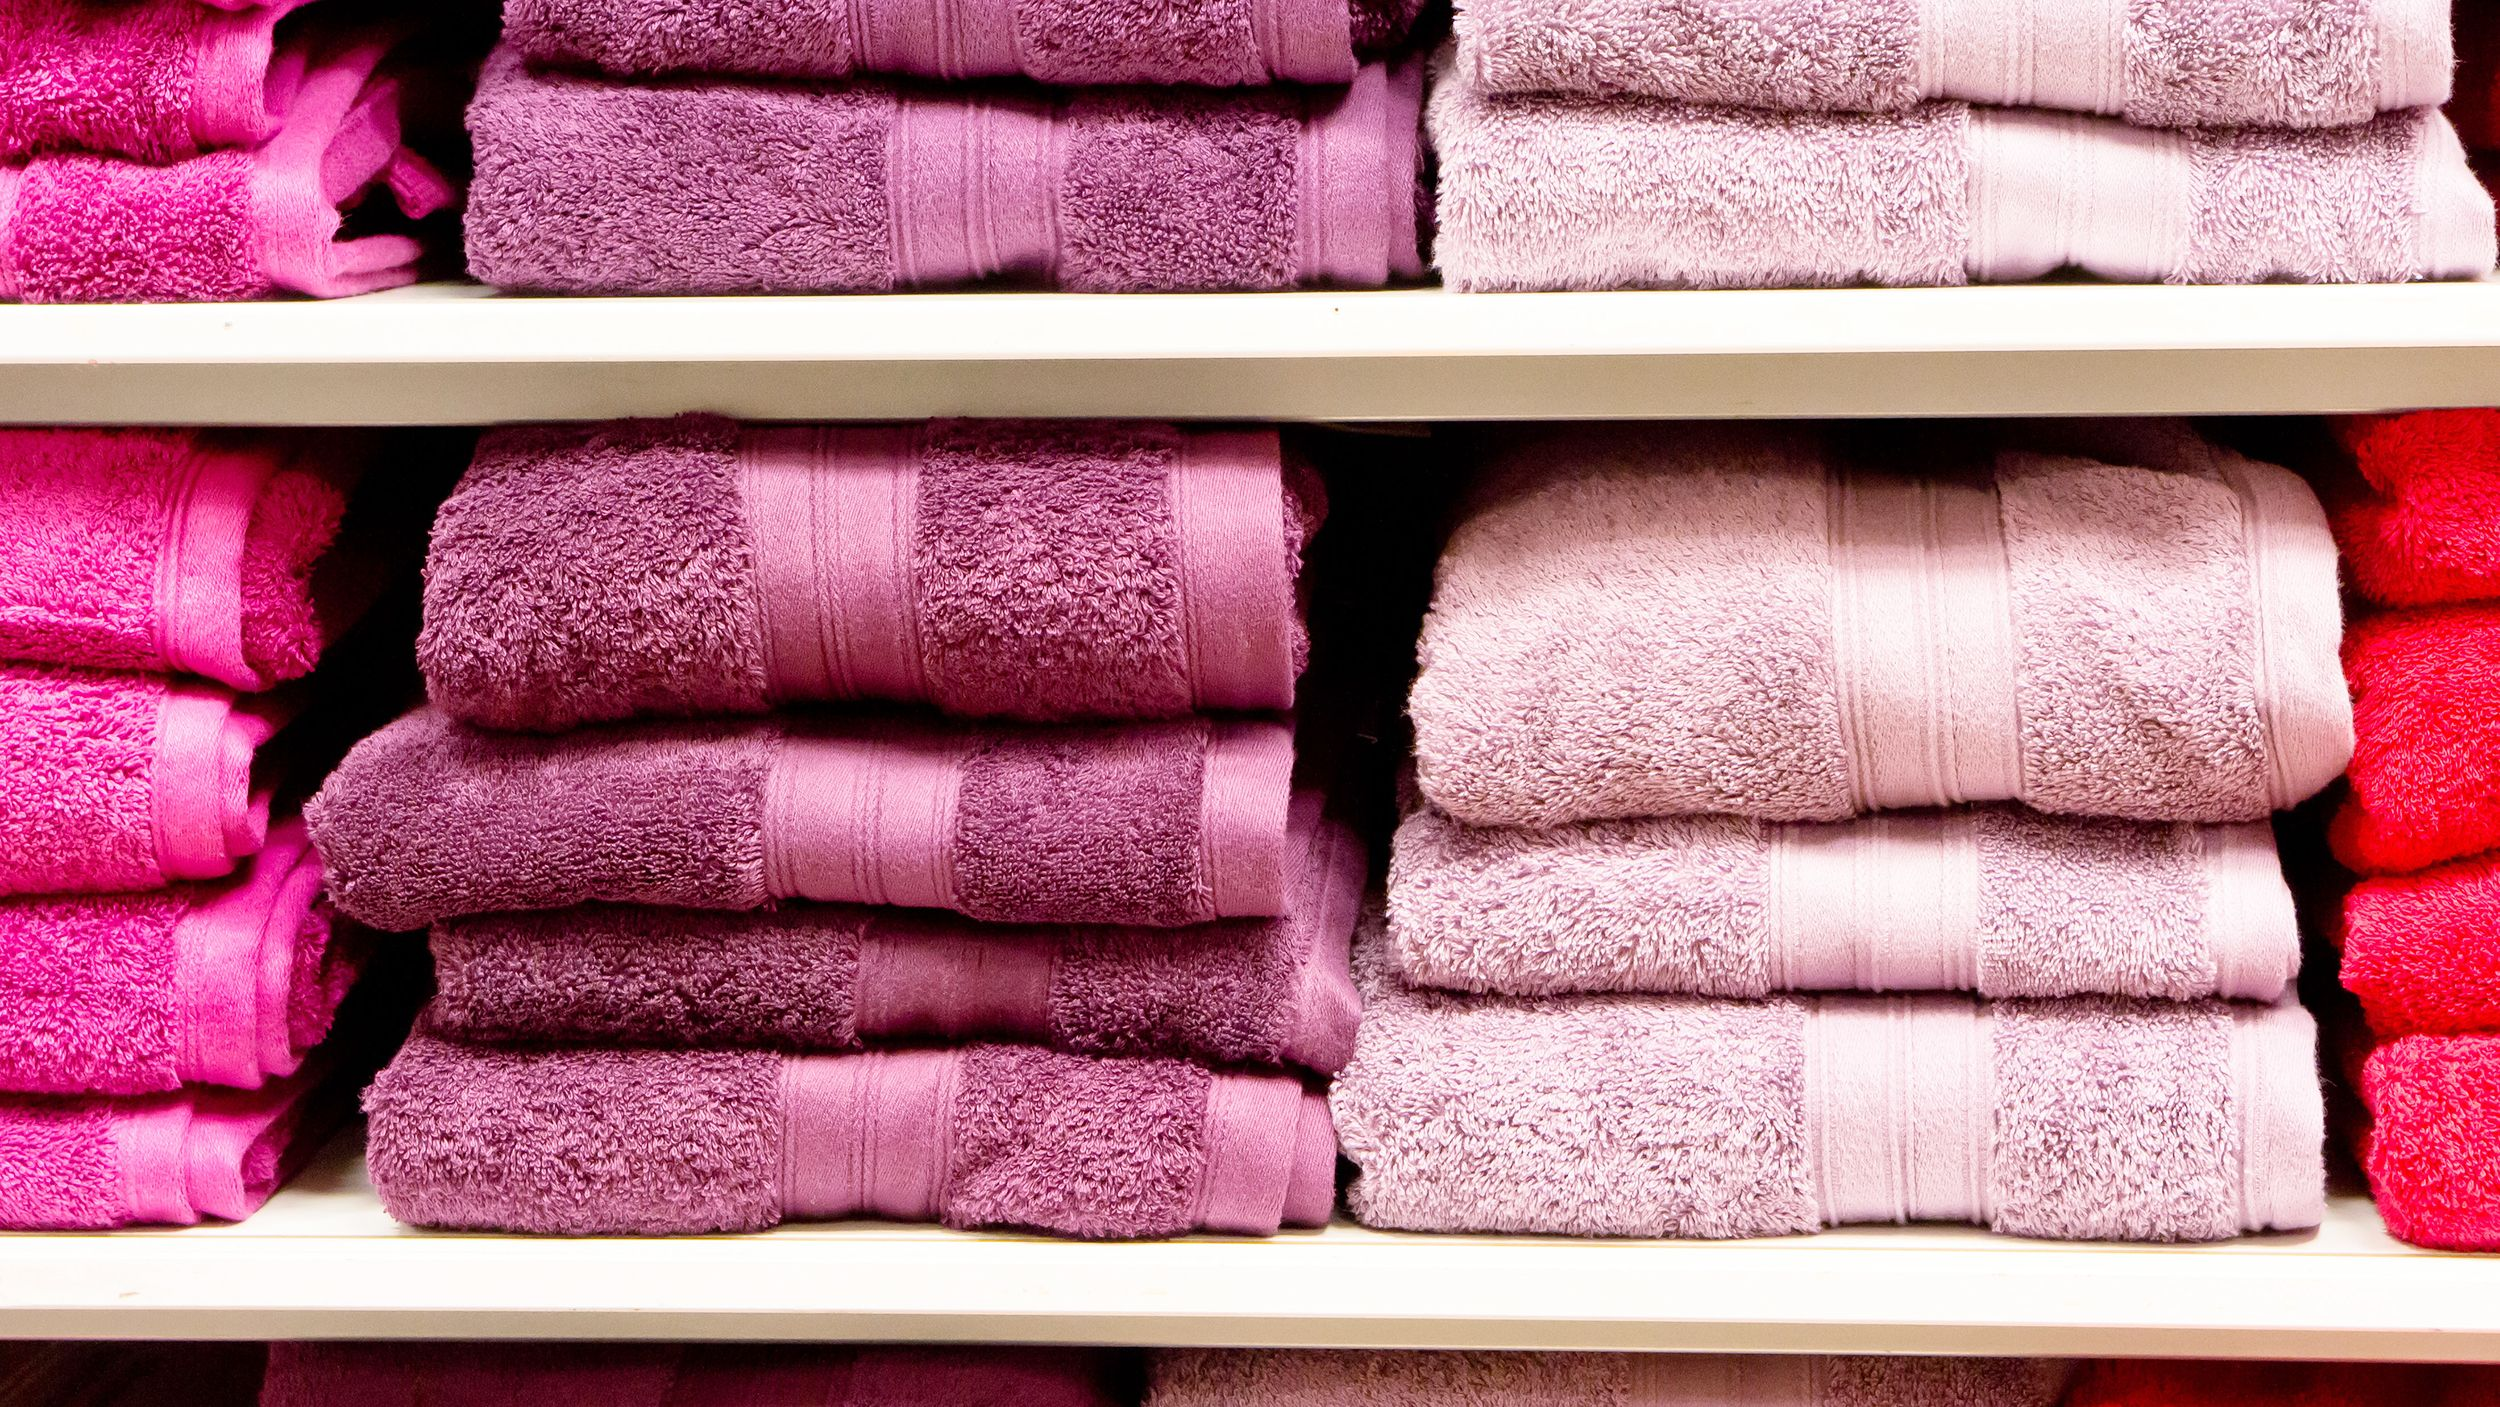 How Often Should You Wash Bath Towels How To Fold Towels Towel